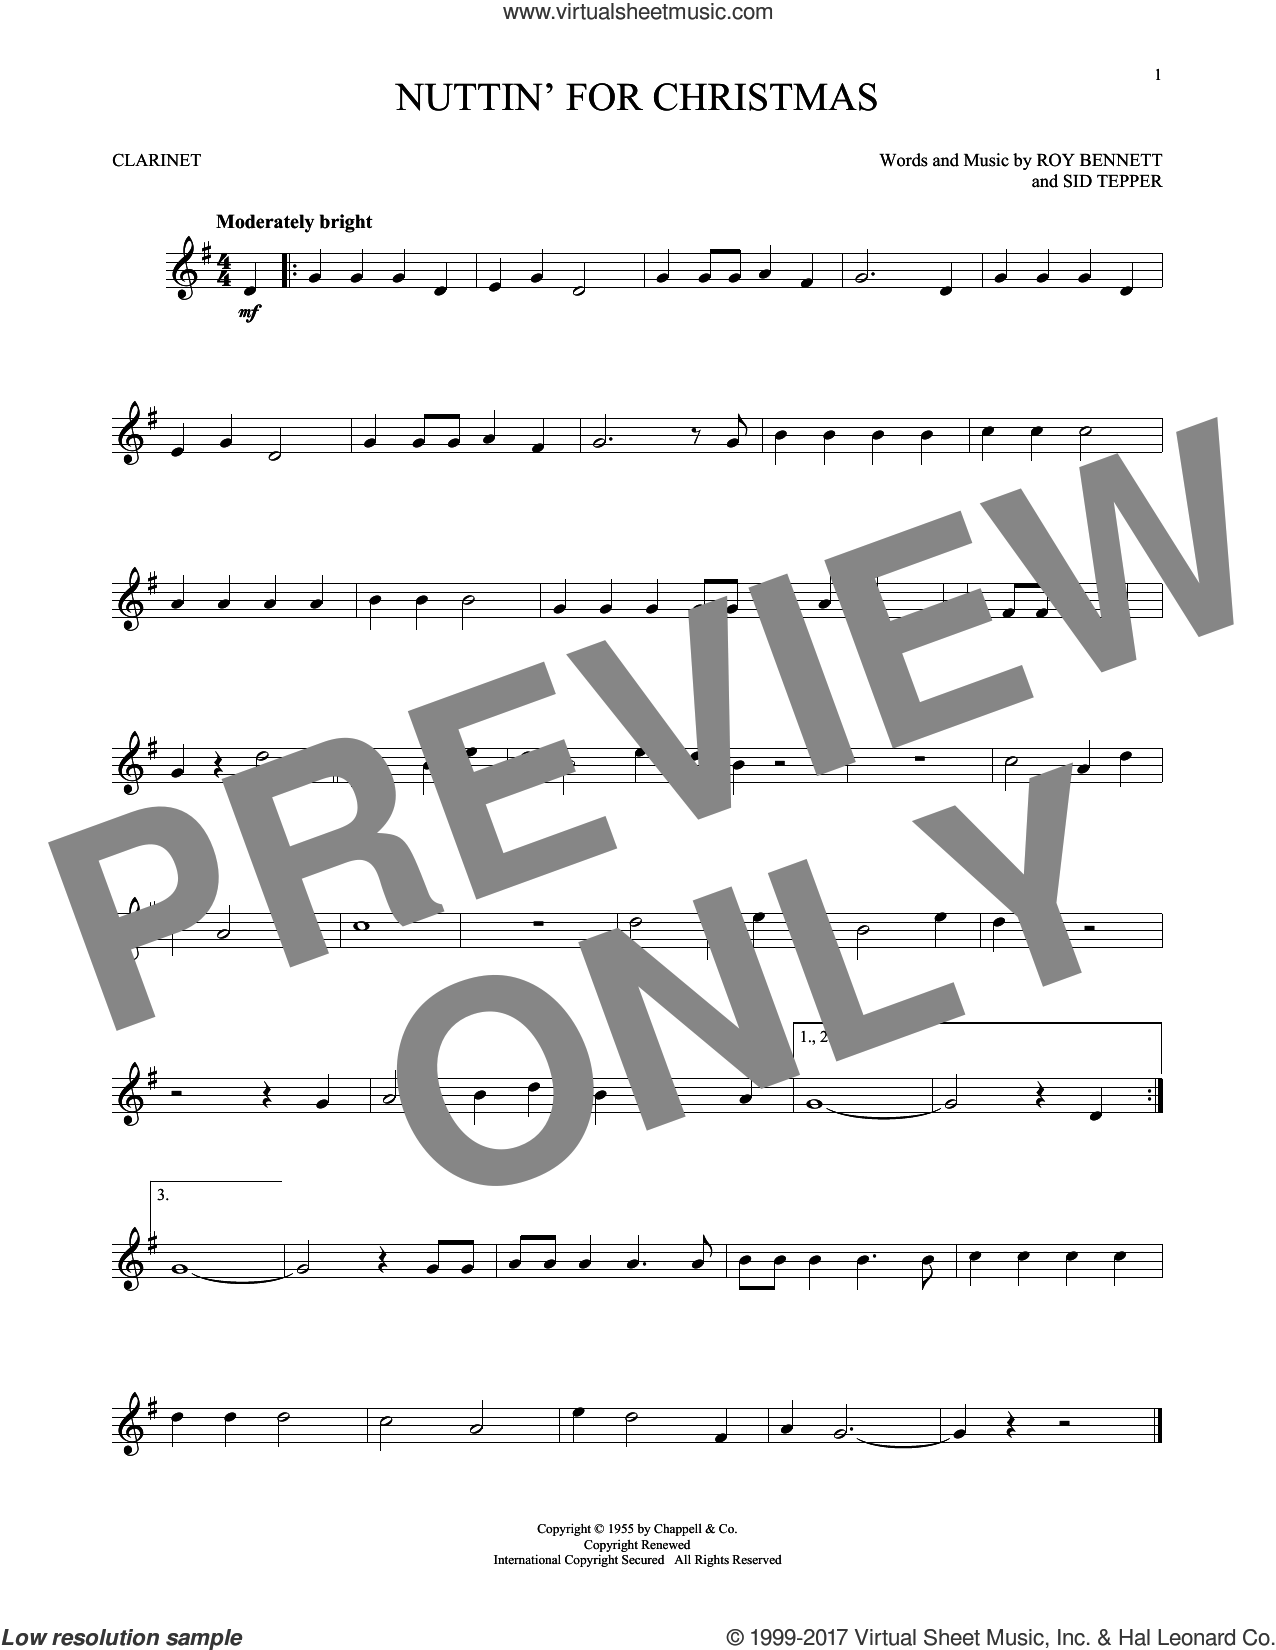 Nuttin' For Christmas sheet music for clarinet solo by Sid Tepper and Roy Bennett. Score Image Preview.